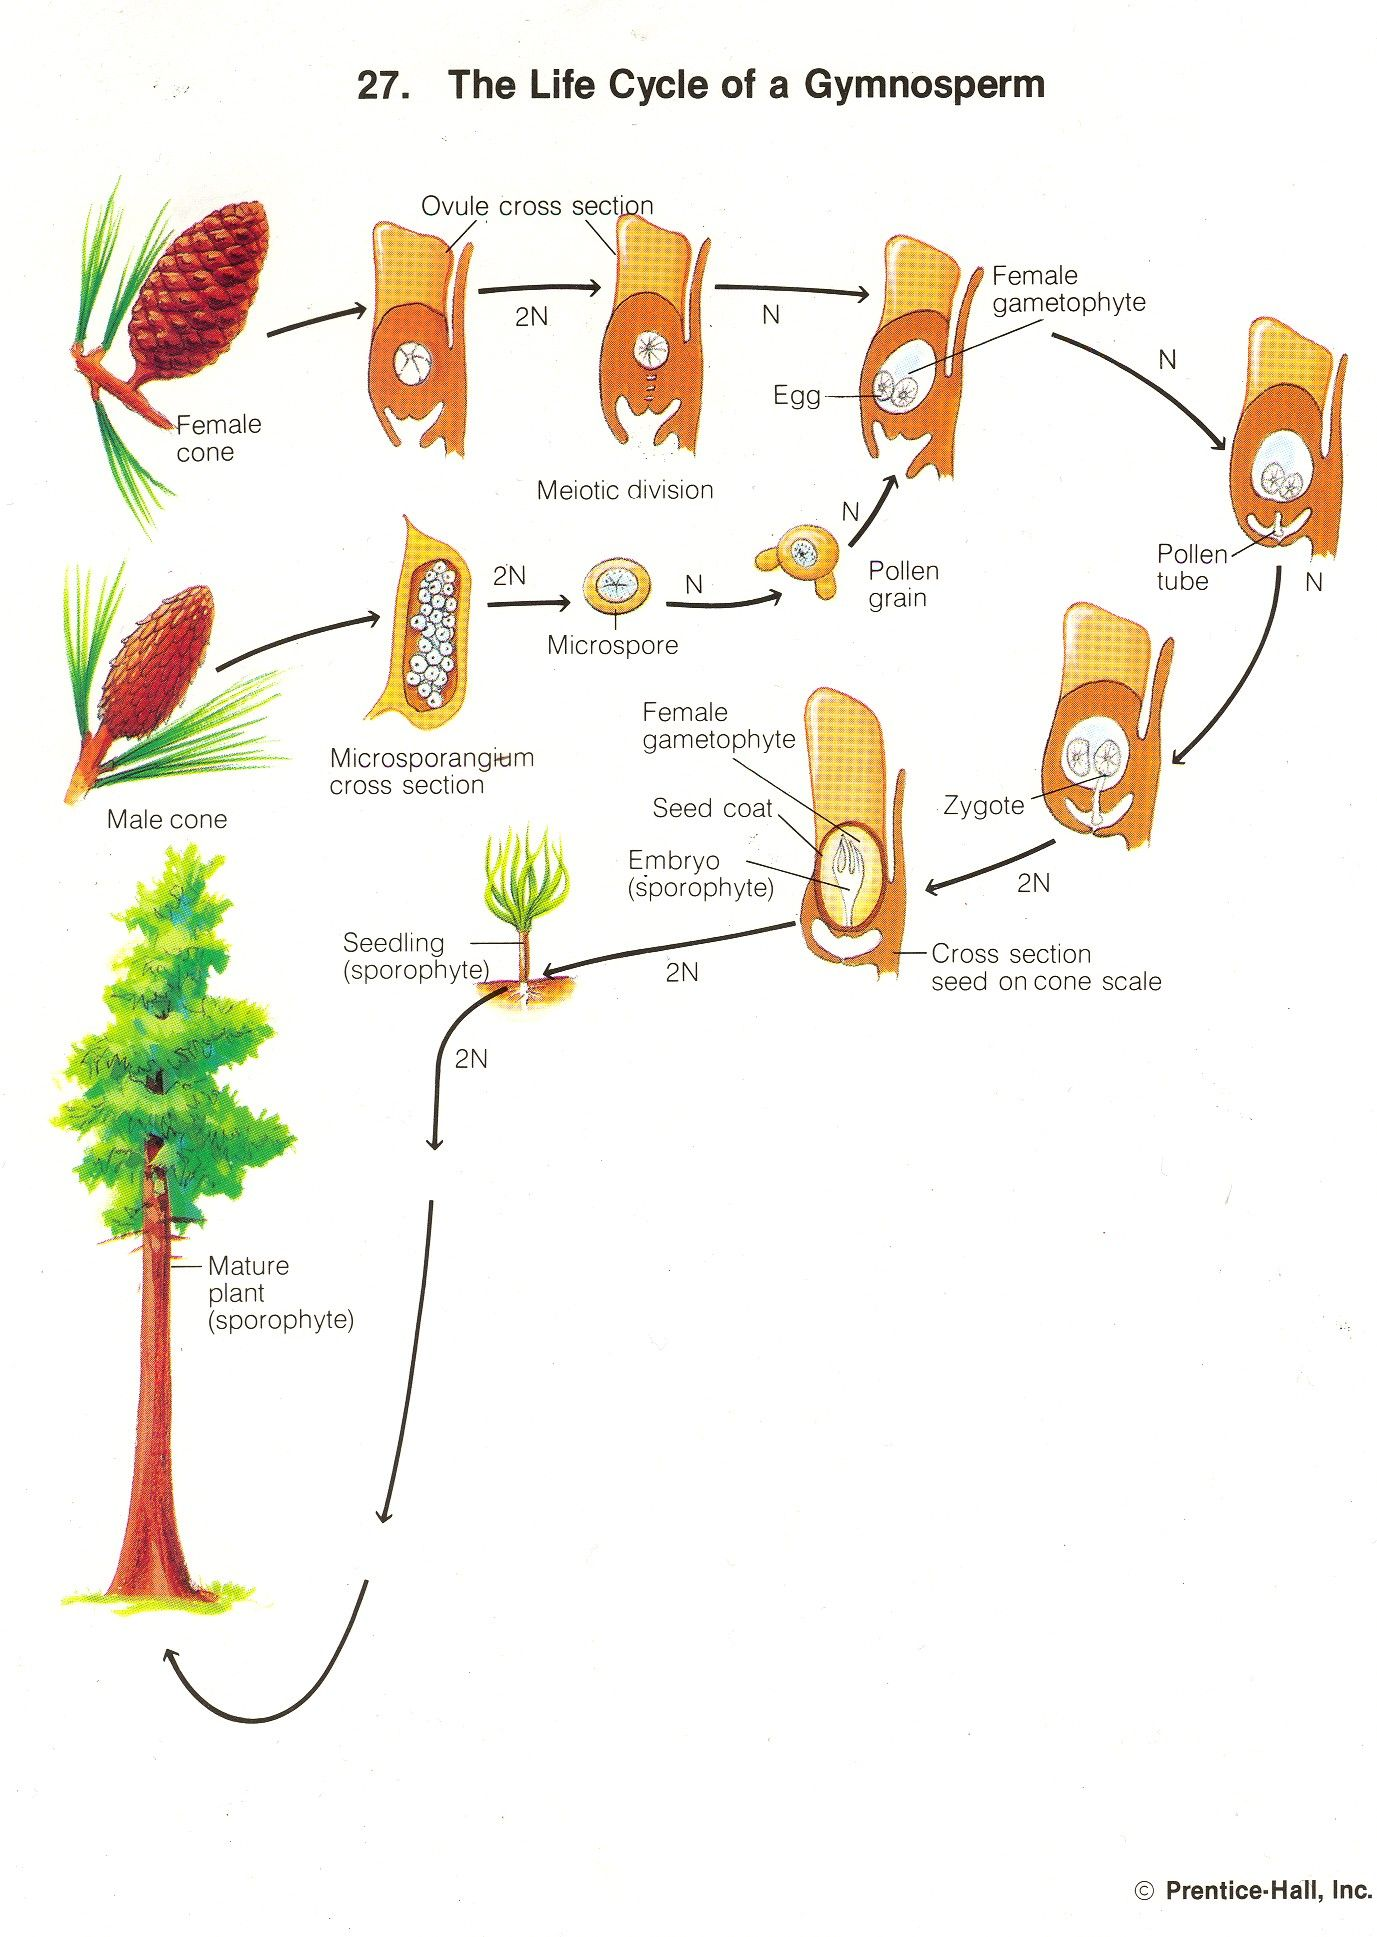 Gymnosperm Life Cycle | Horticulture | Teaching biology ...